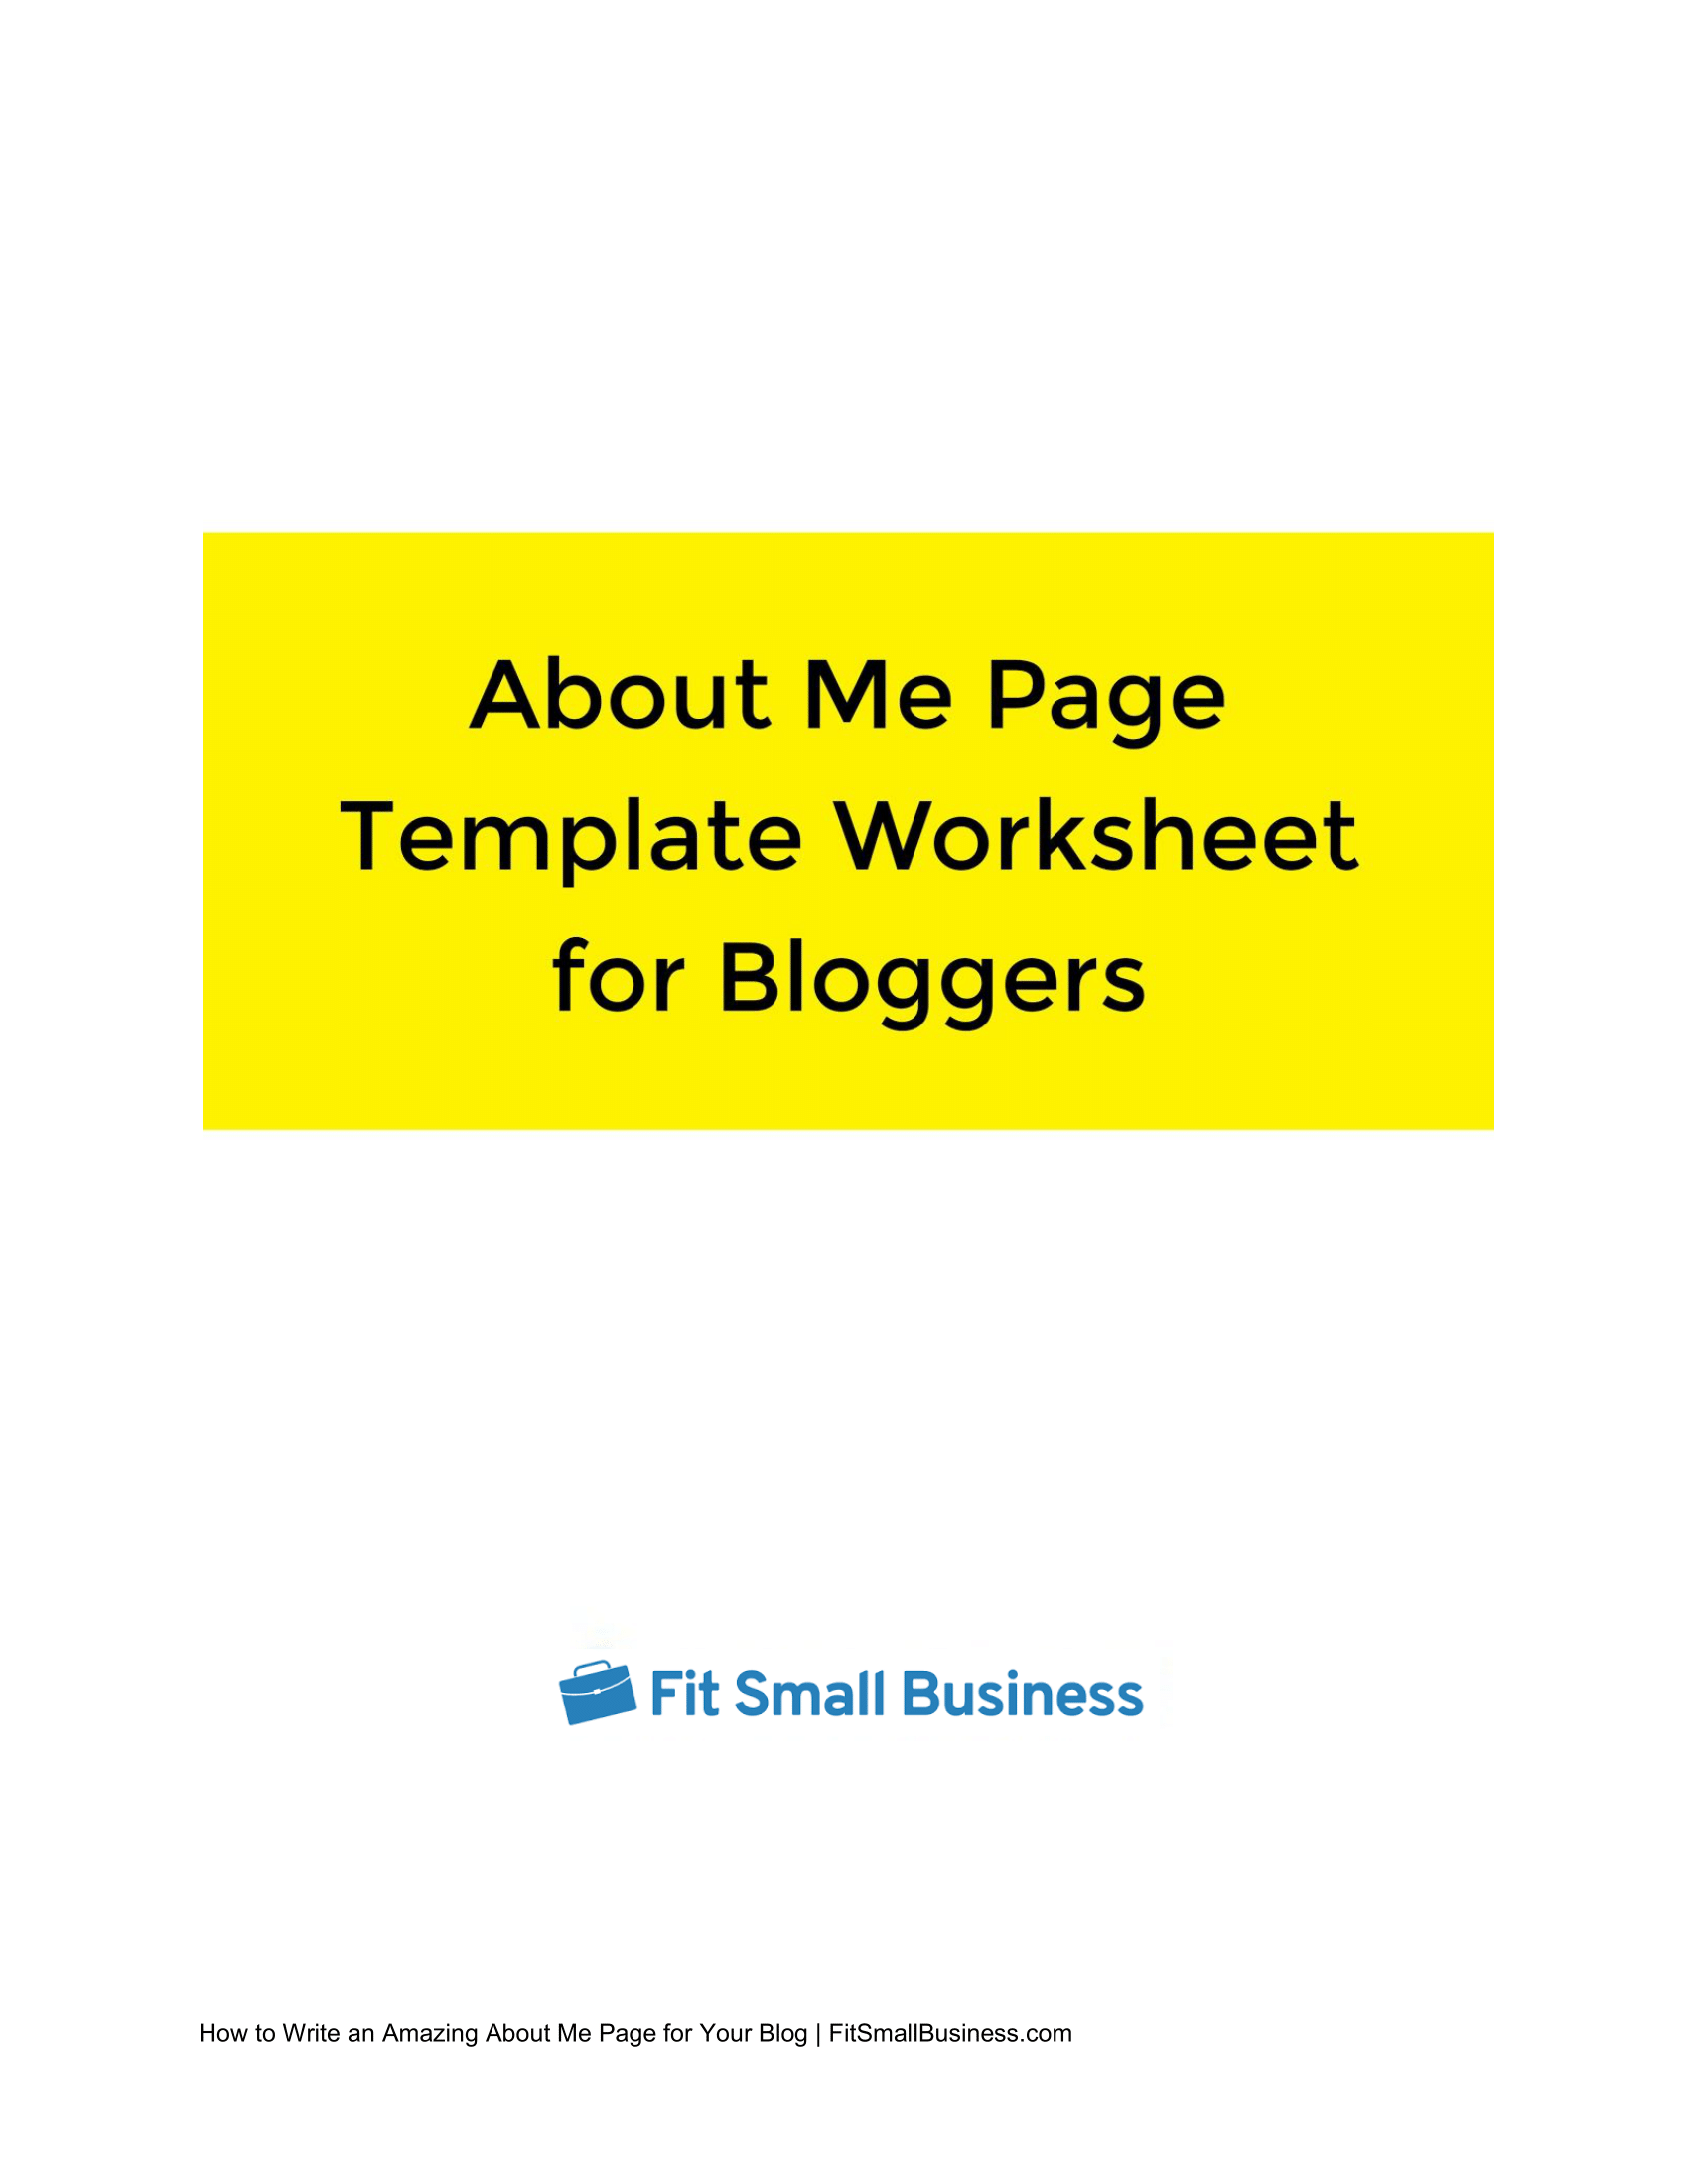 About Me Template Worksheet